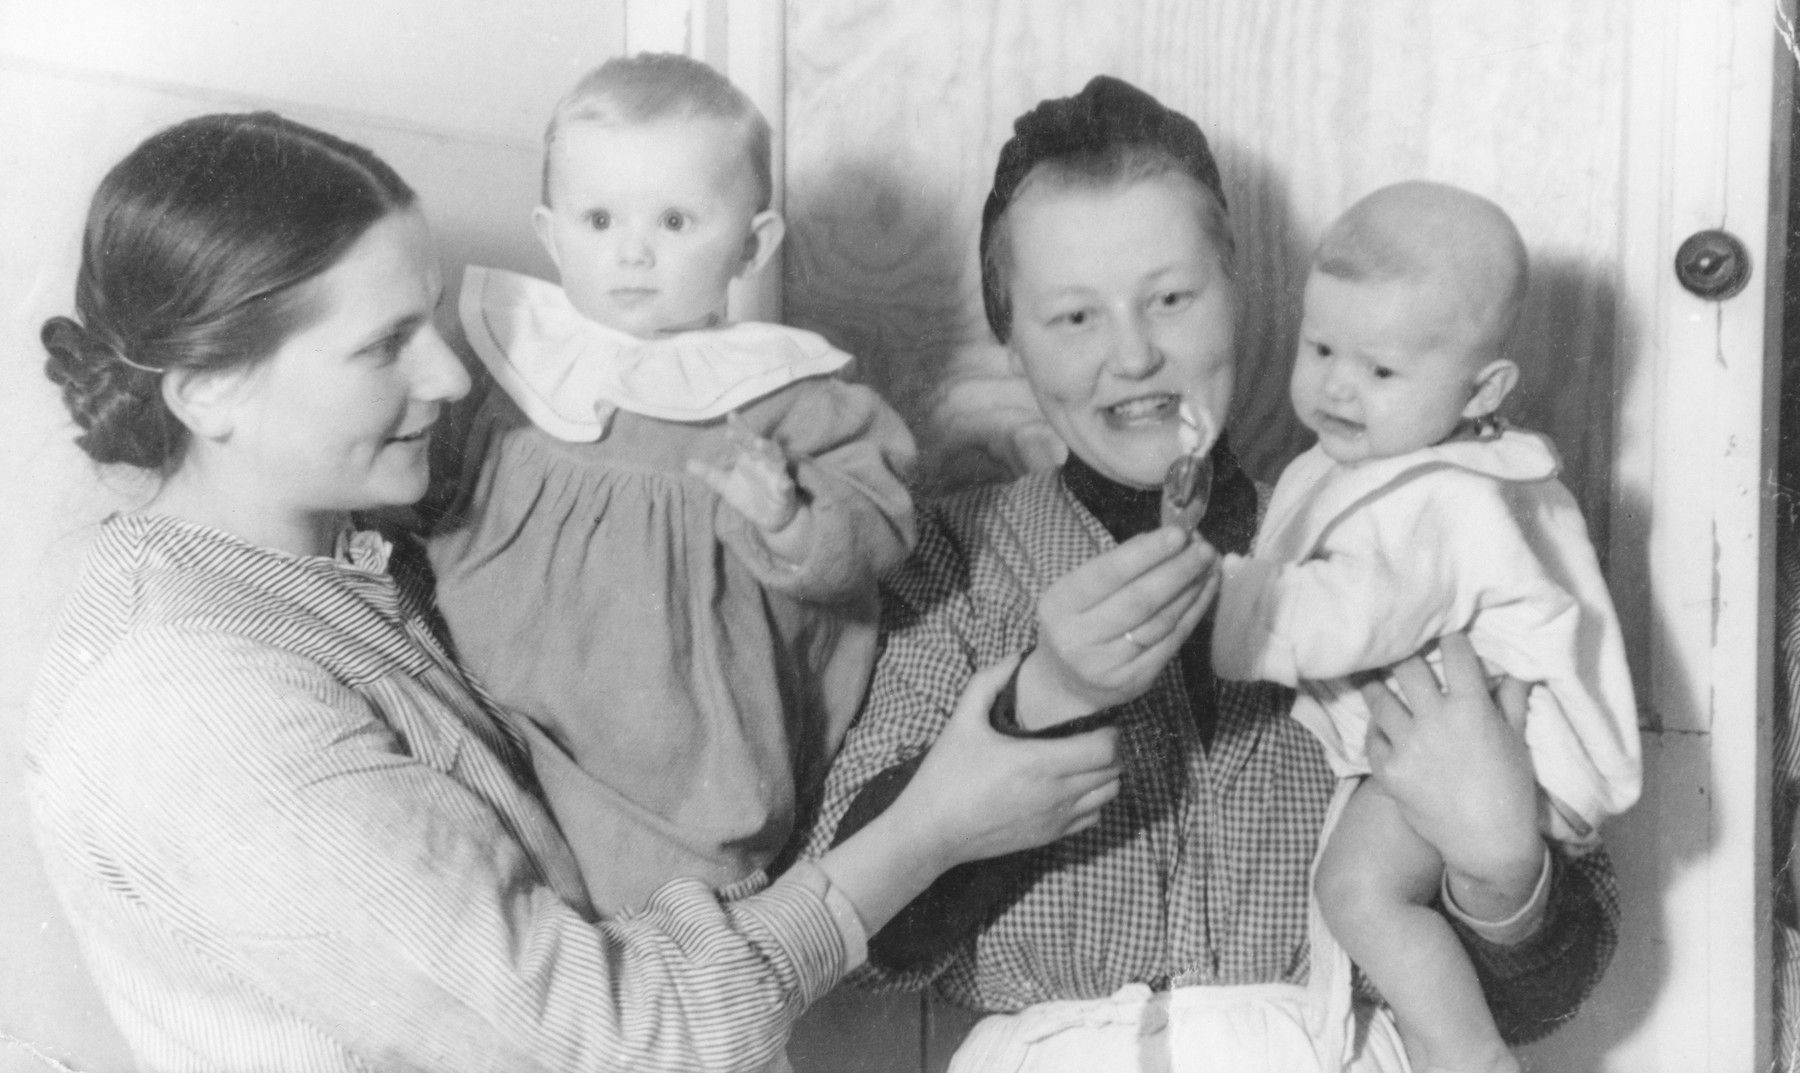 Leah Rygier holds her daughter Wanda in an orphanage where they were hiding.  A Polish woman holding another baby is standing next to her.